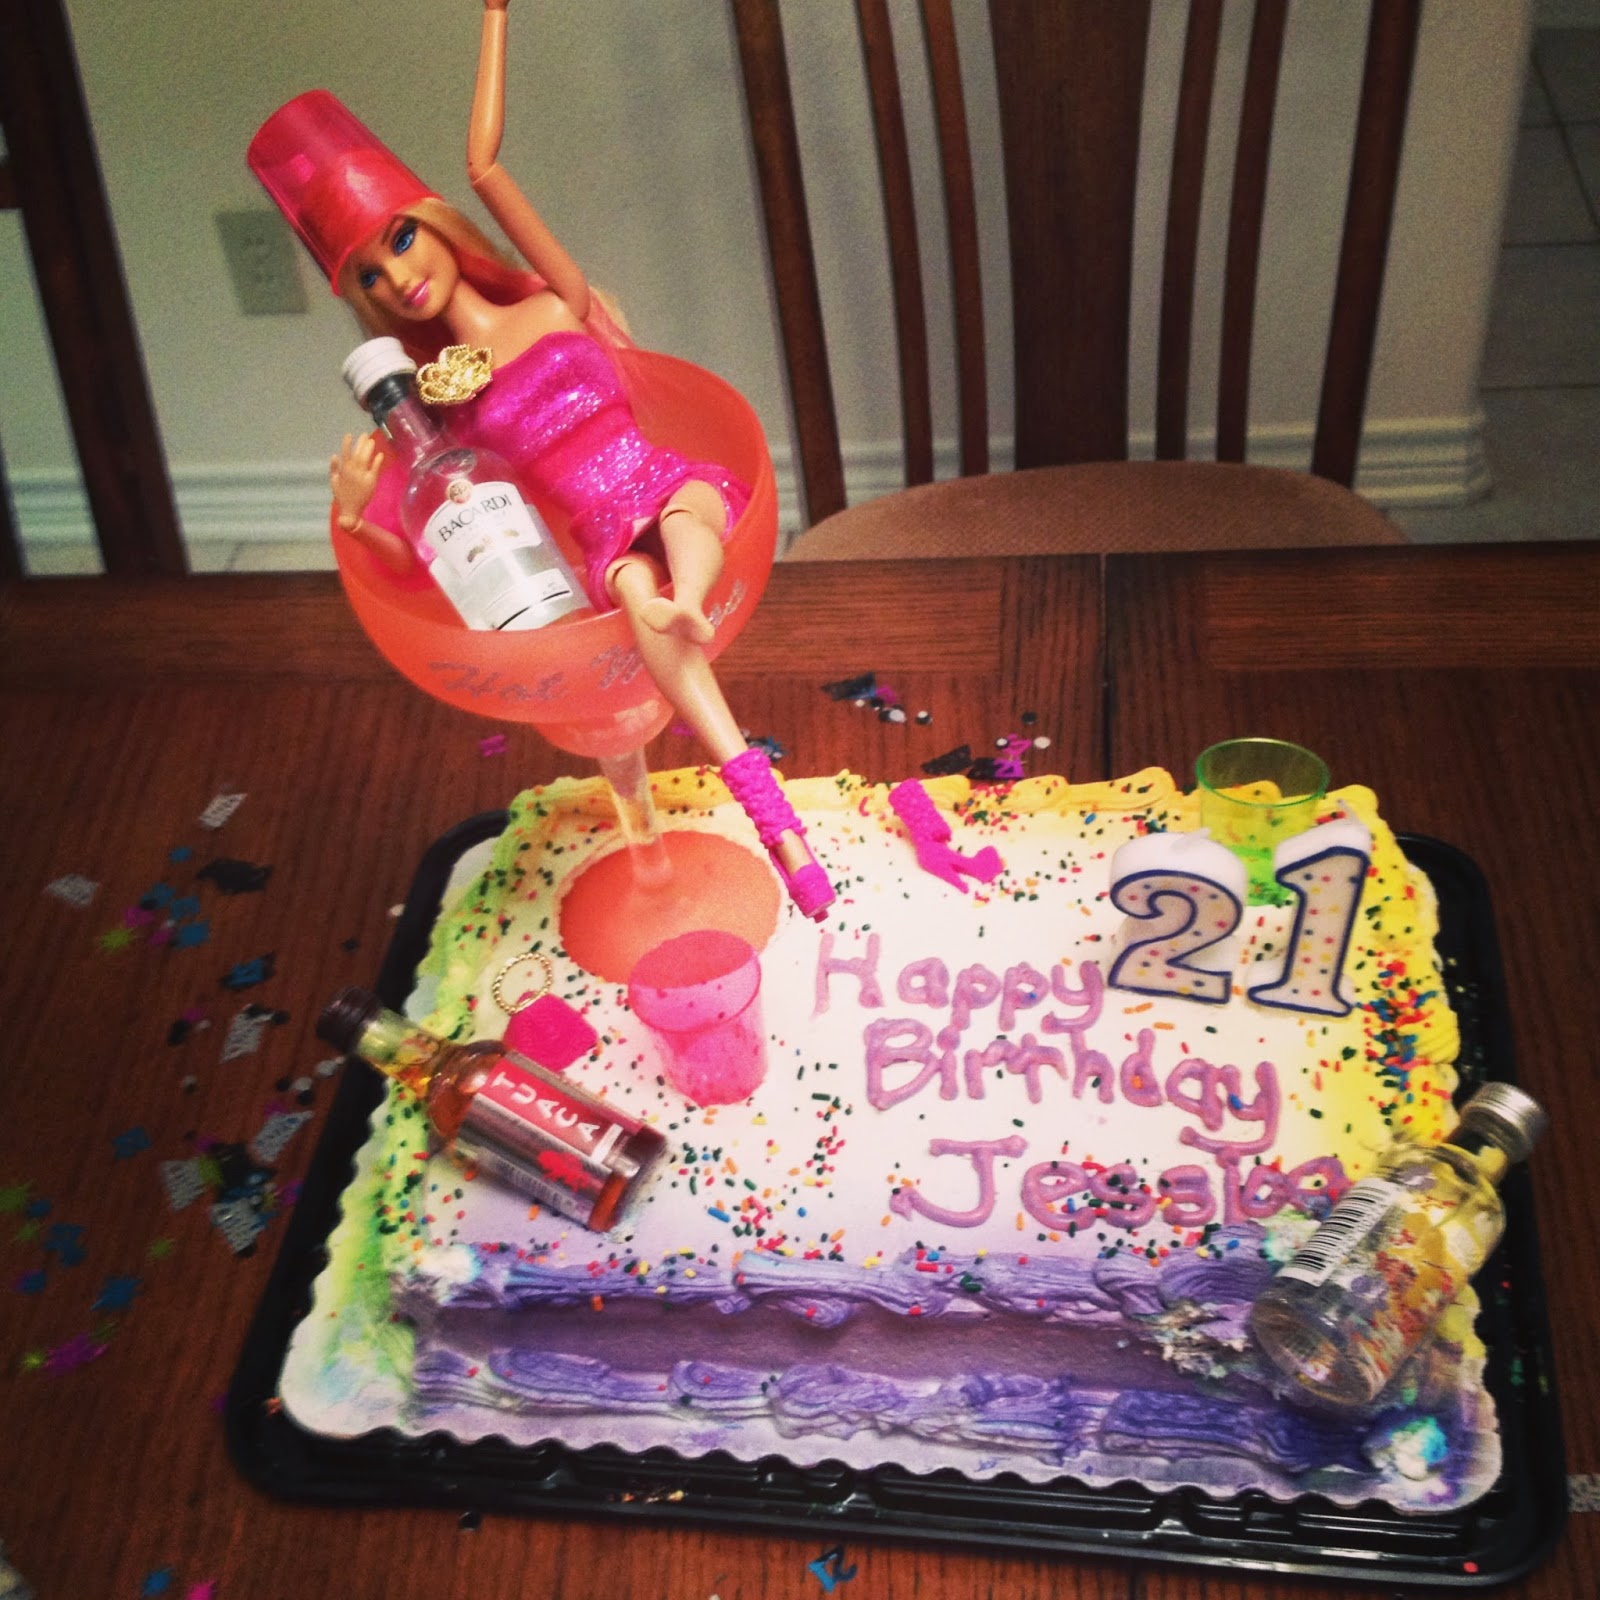 Cake Decorating Ideas For 21st Birthday : Top 62 21st Birthday Cakes Barbie Cakes Gallery